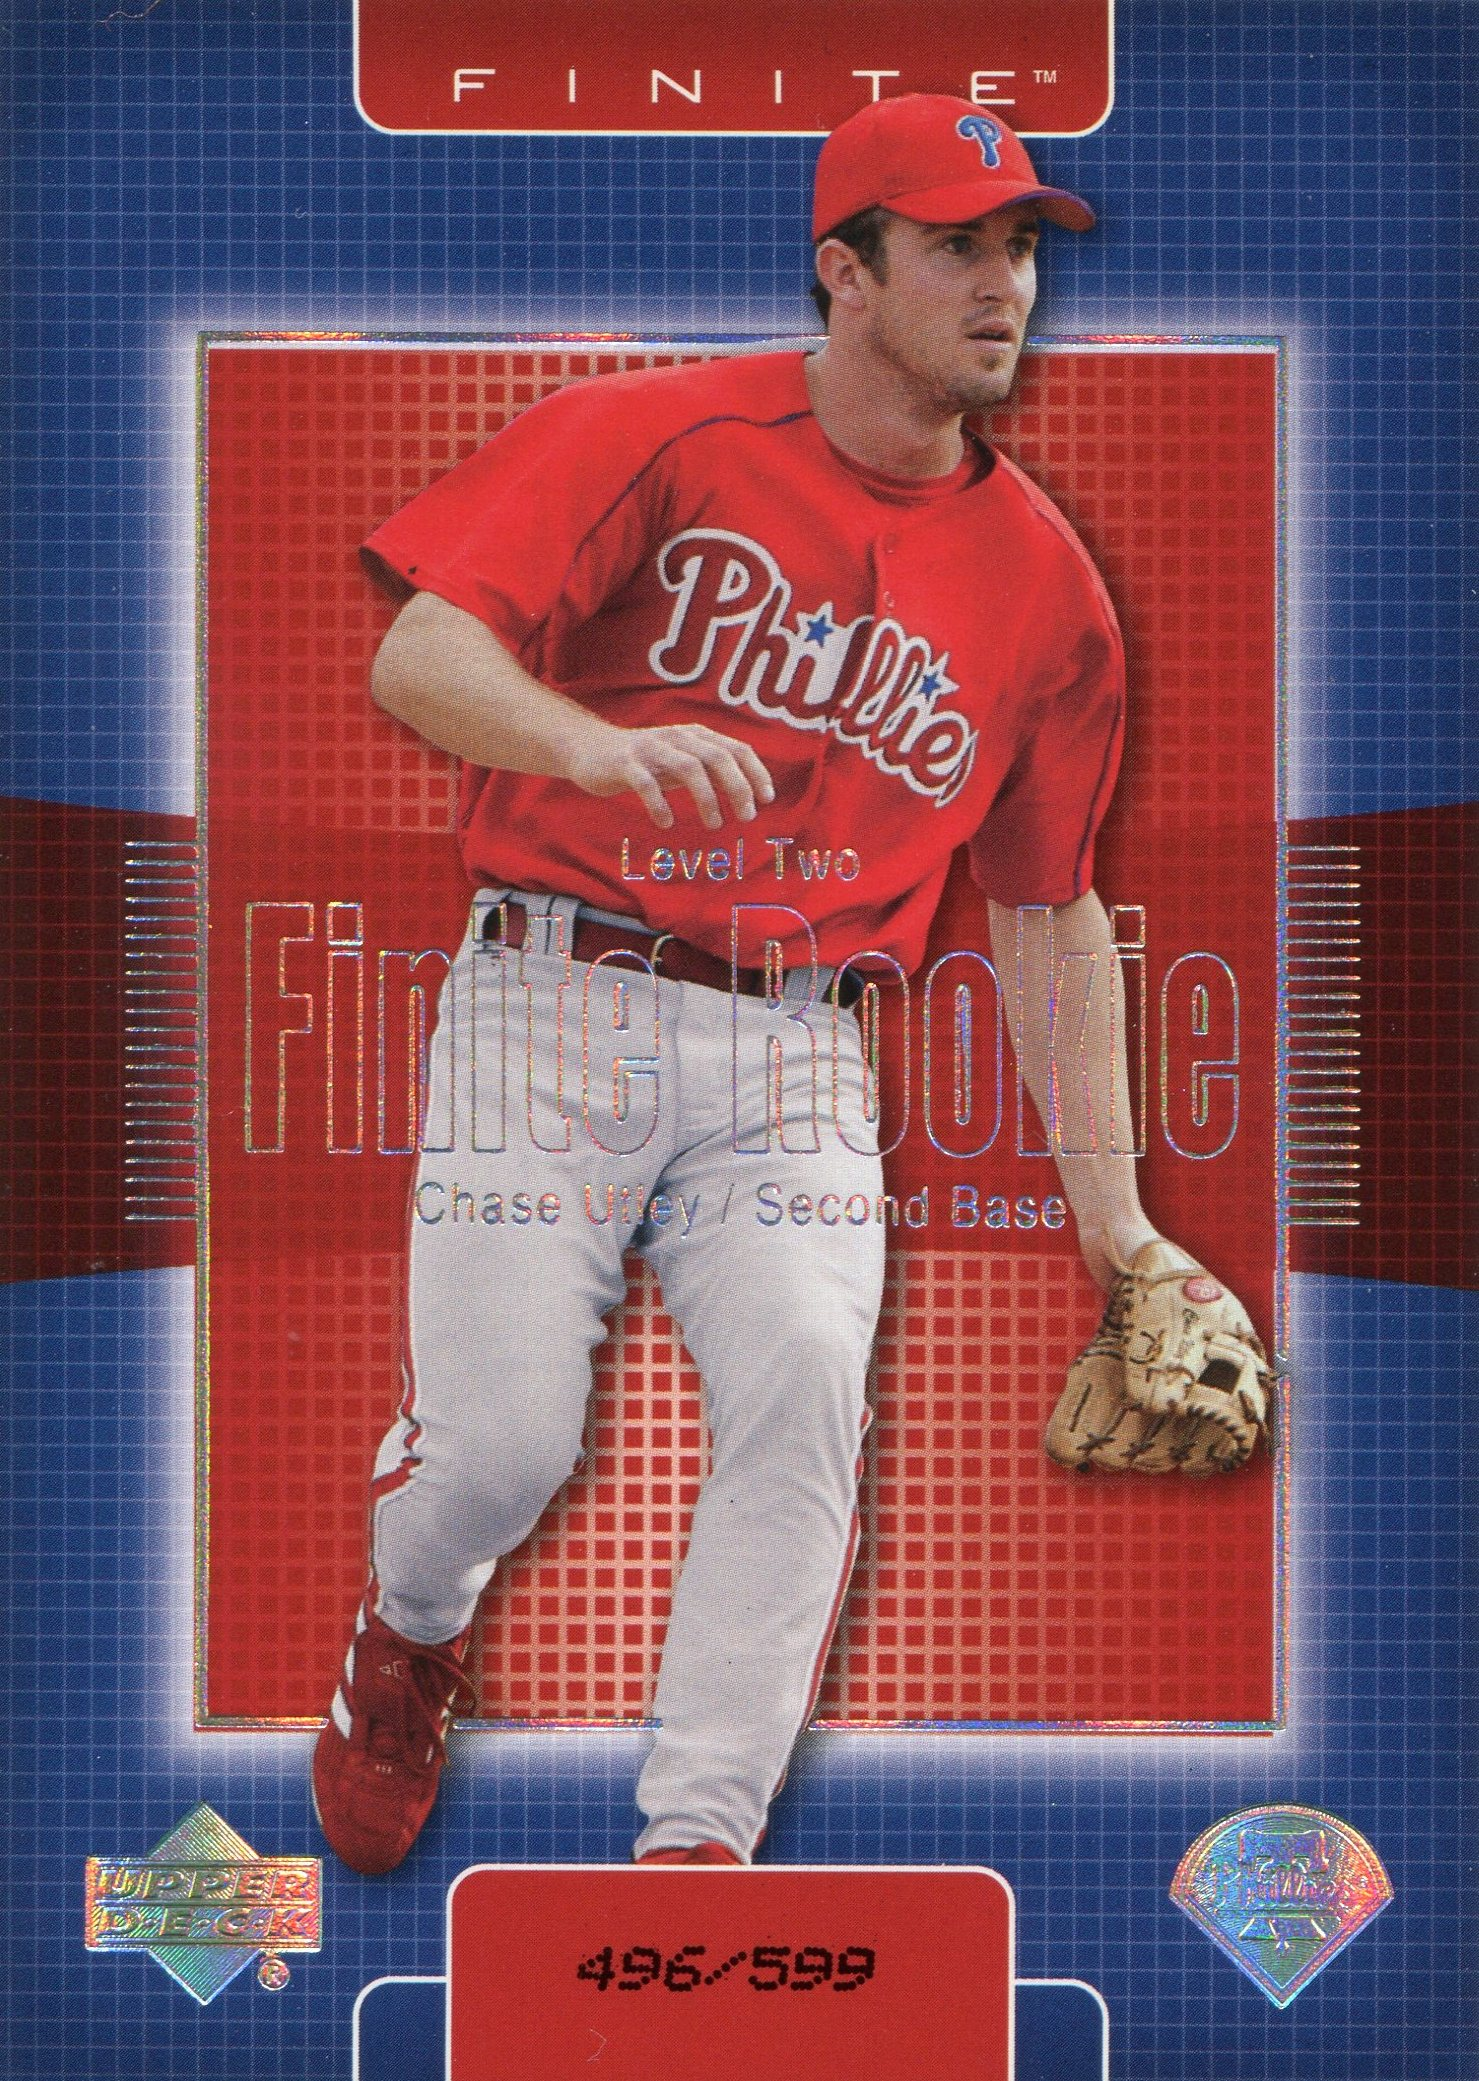 Eric Bolling Baseball Card Chase utley 14,000 phillies